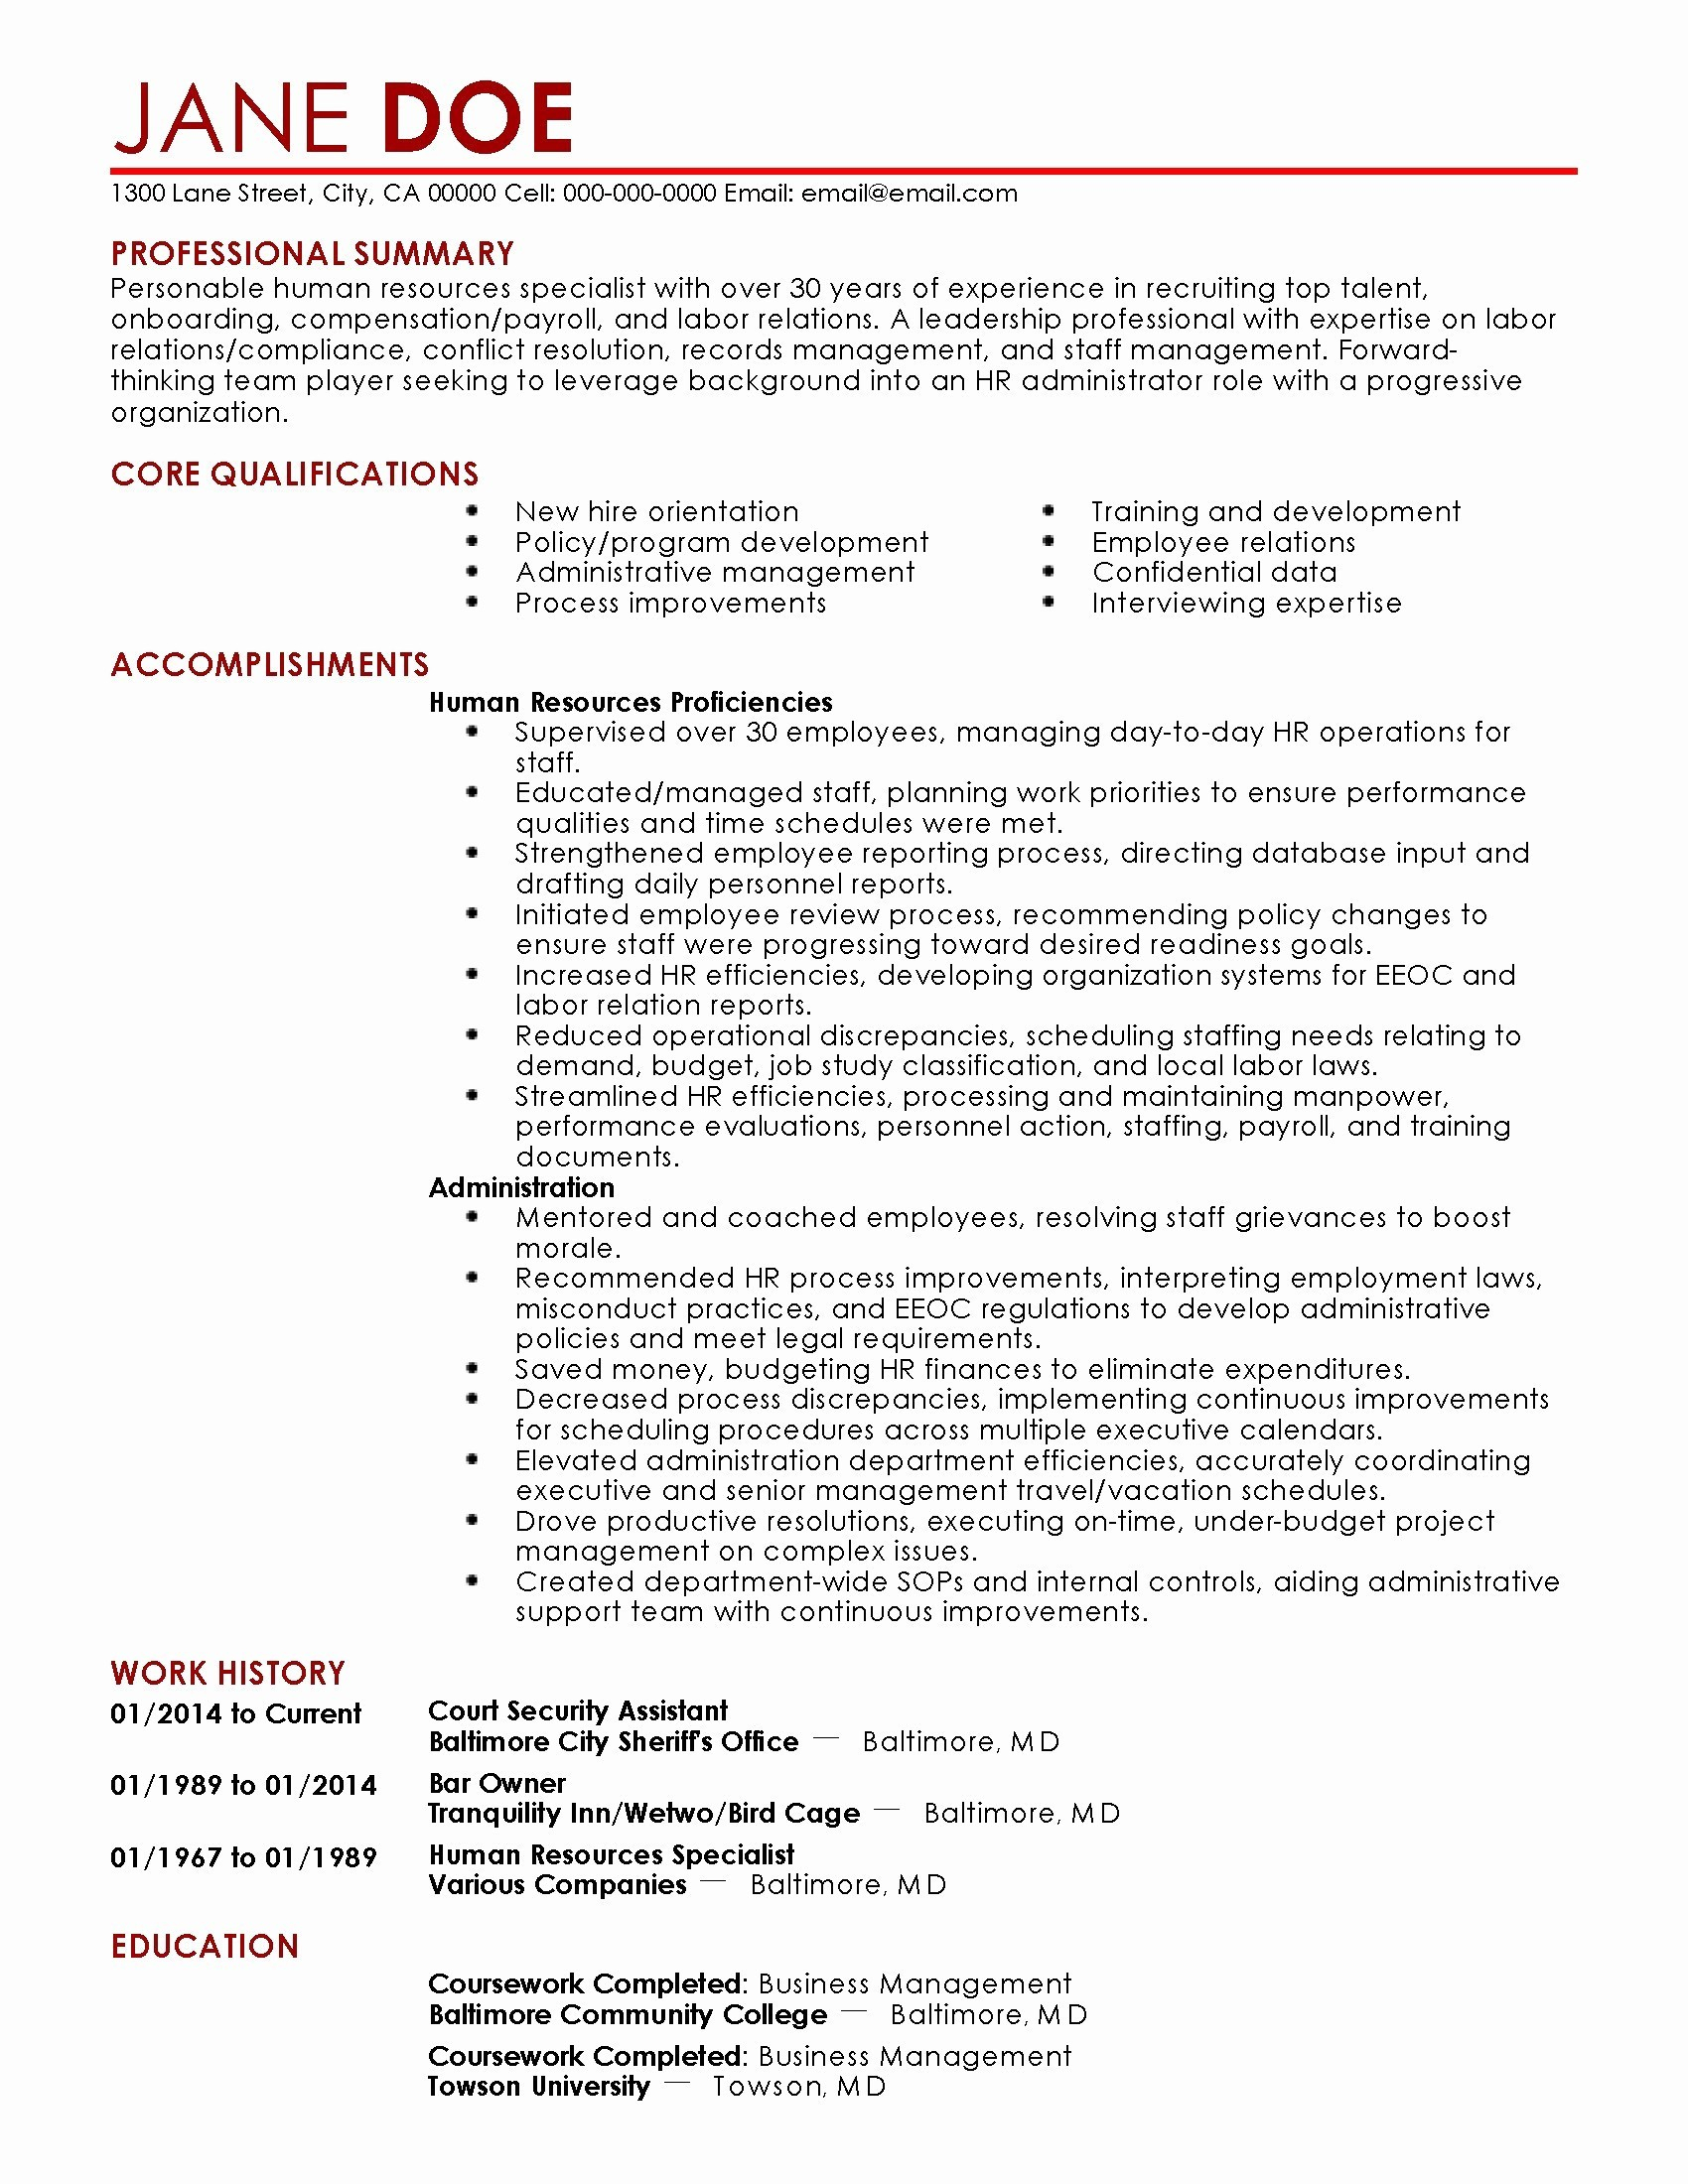 Legal assistant Resume Template - Legal assistant Resume New Legal assistant Resume Template Best